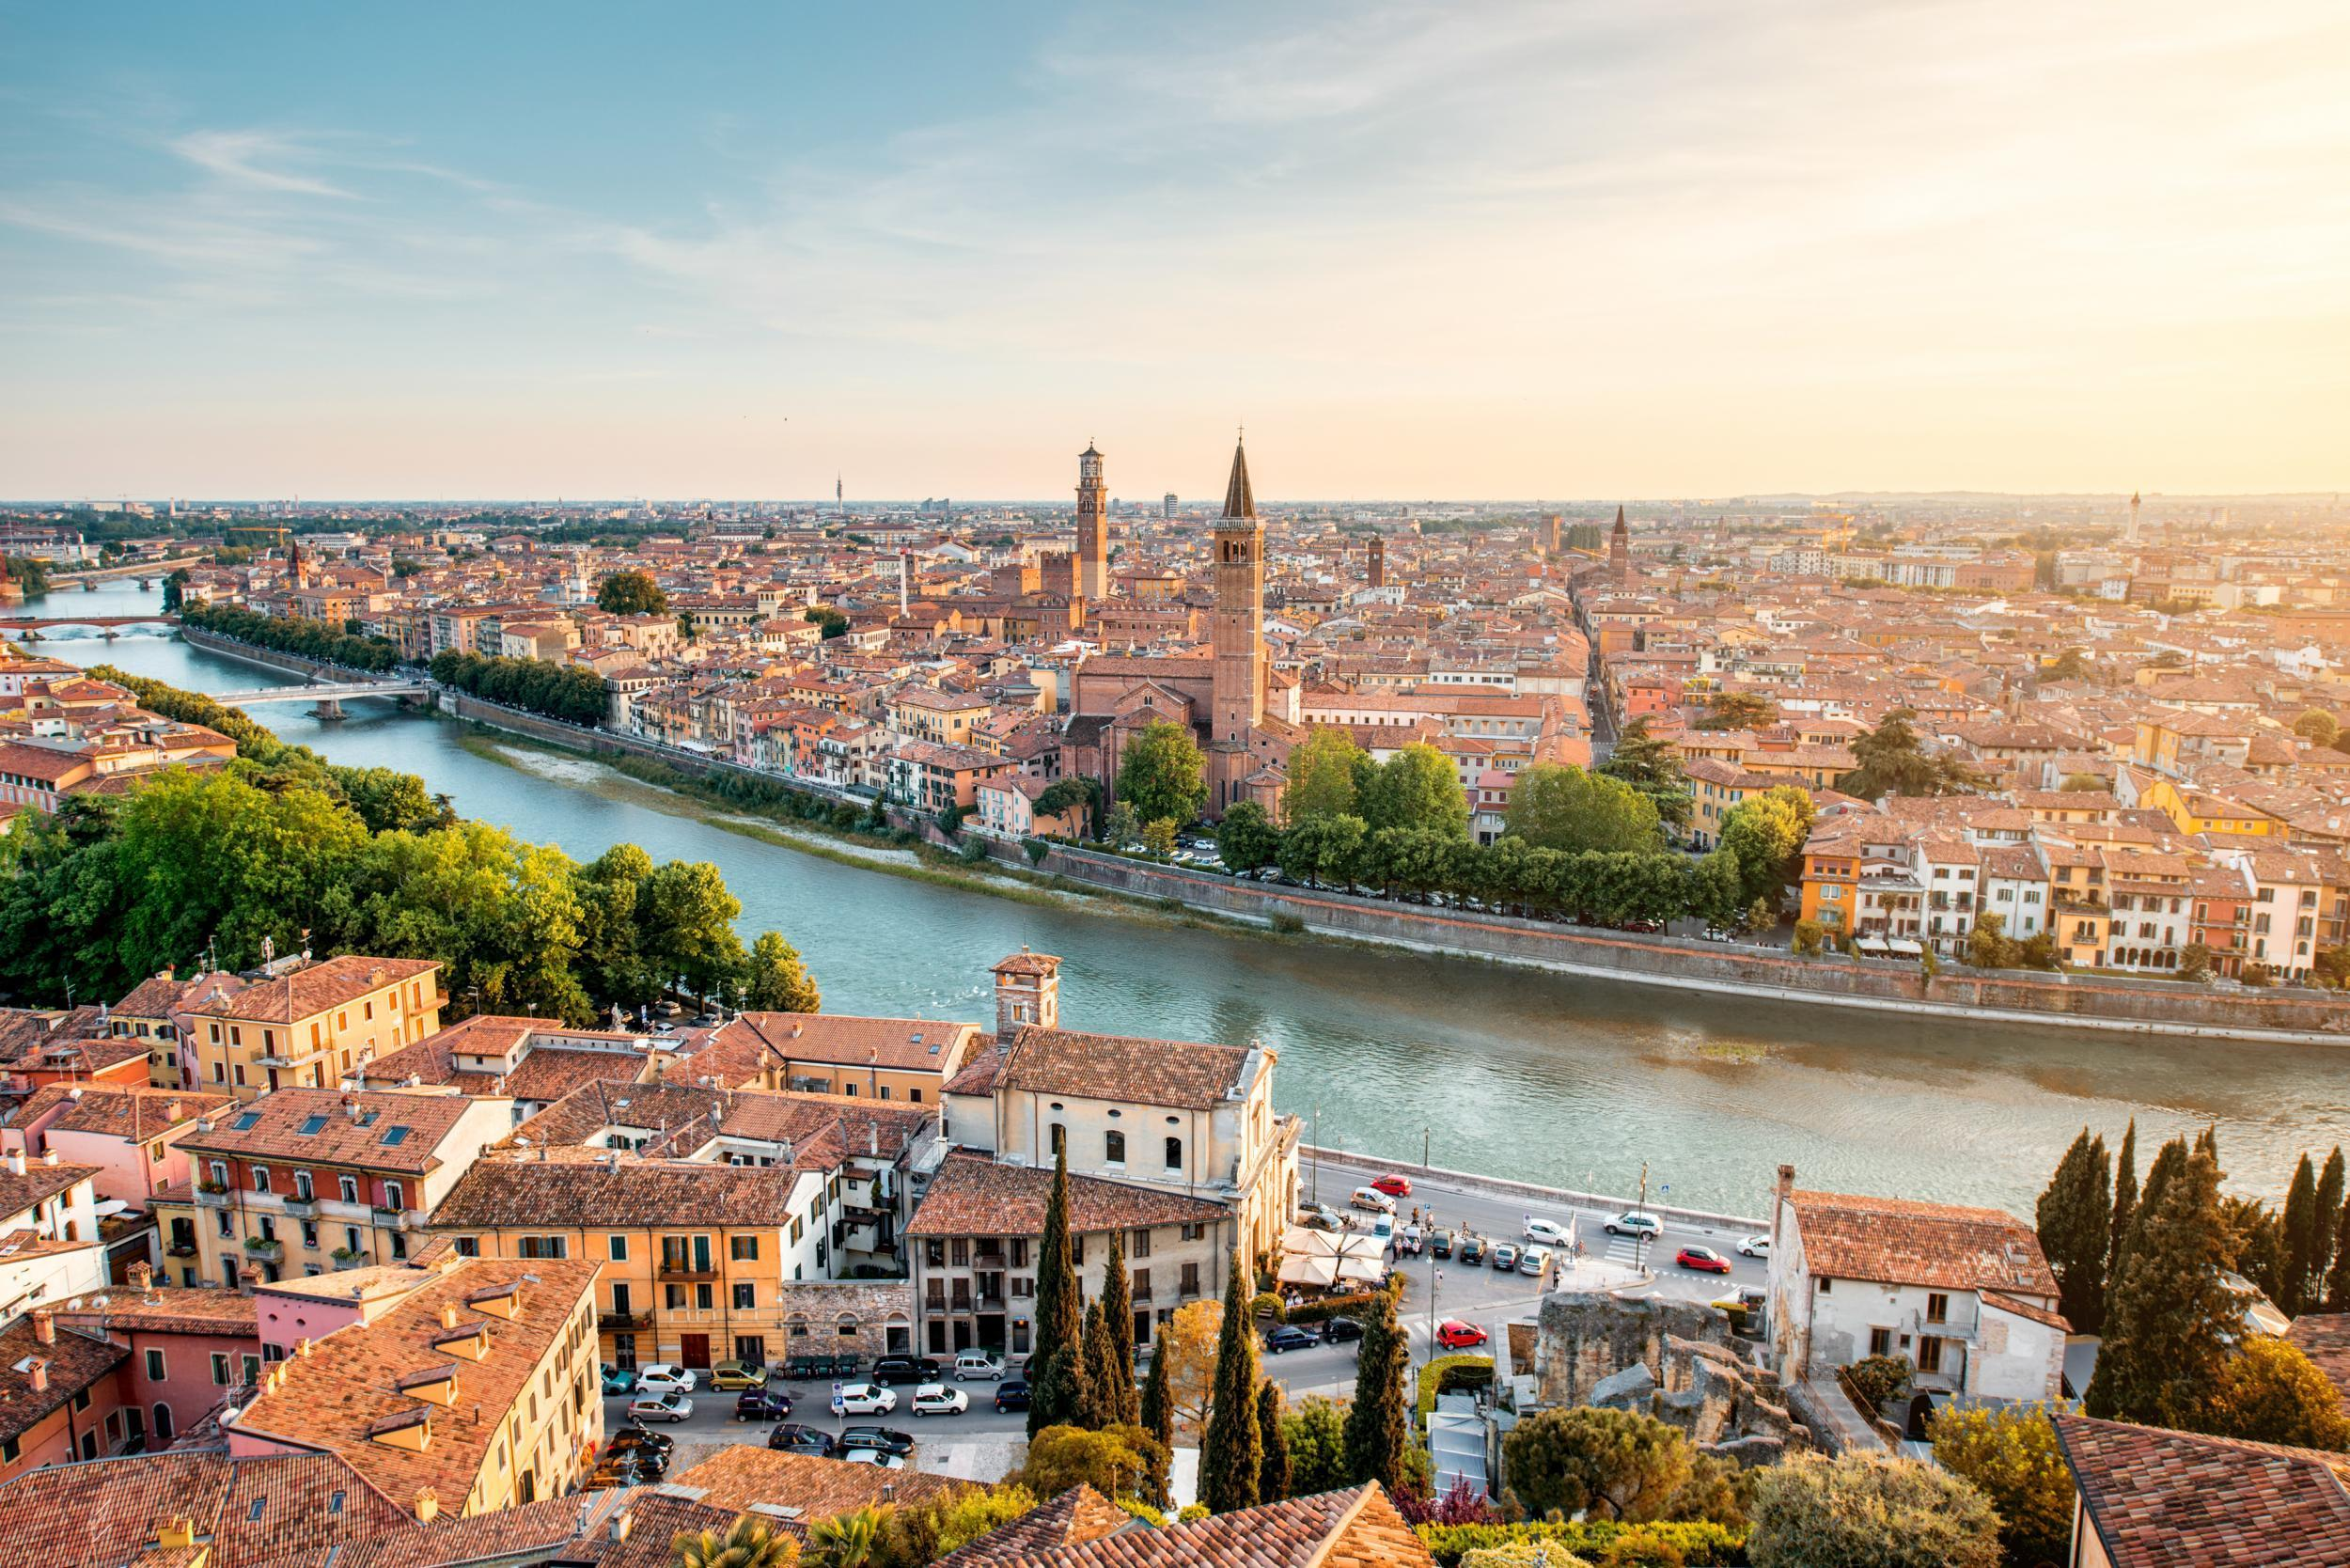 48 hours in Verona: hotels, restaurants and places to visit | The Independent